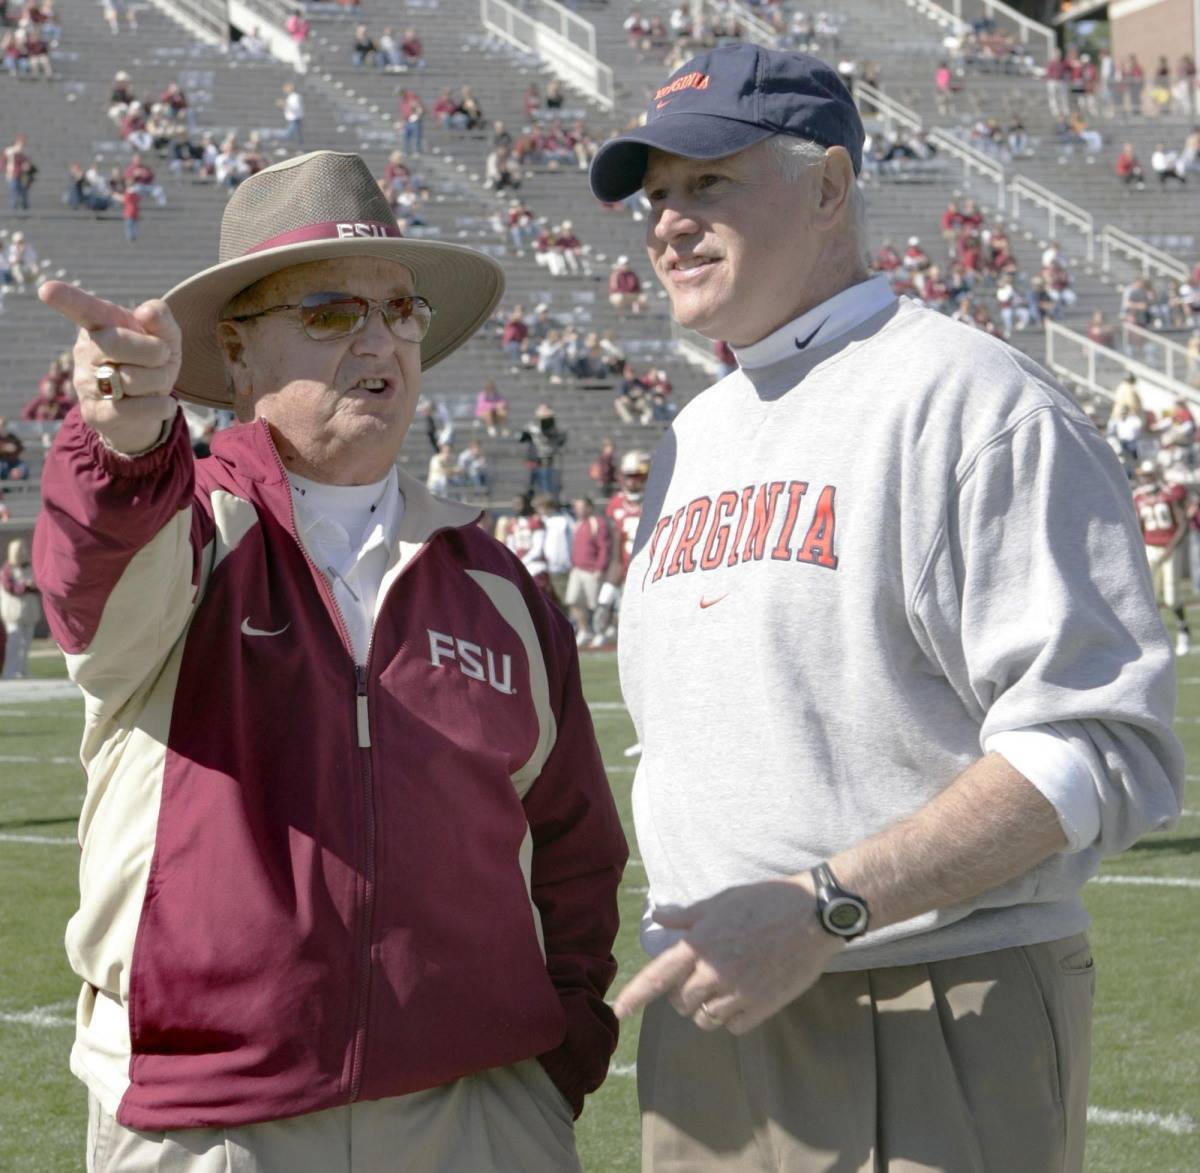 Florida State head coach Bobby Bowden, left, talks with Virginia head coach Al Groh prior to the start of their college football game, Satuday, Nov. 4, 2006, in Tallahassee, Fla. (AP Photo/Steve Cannon)